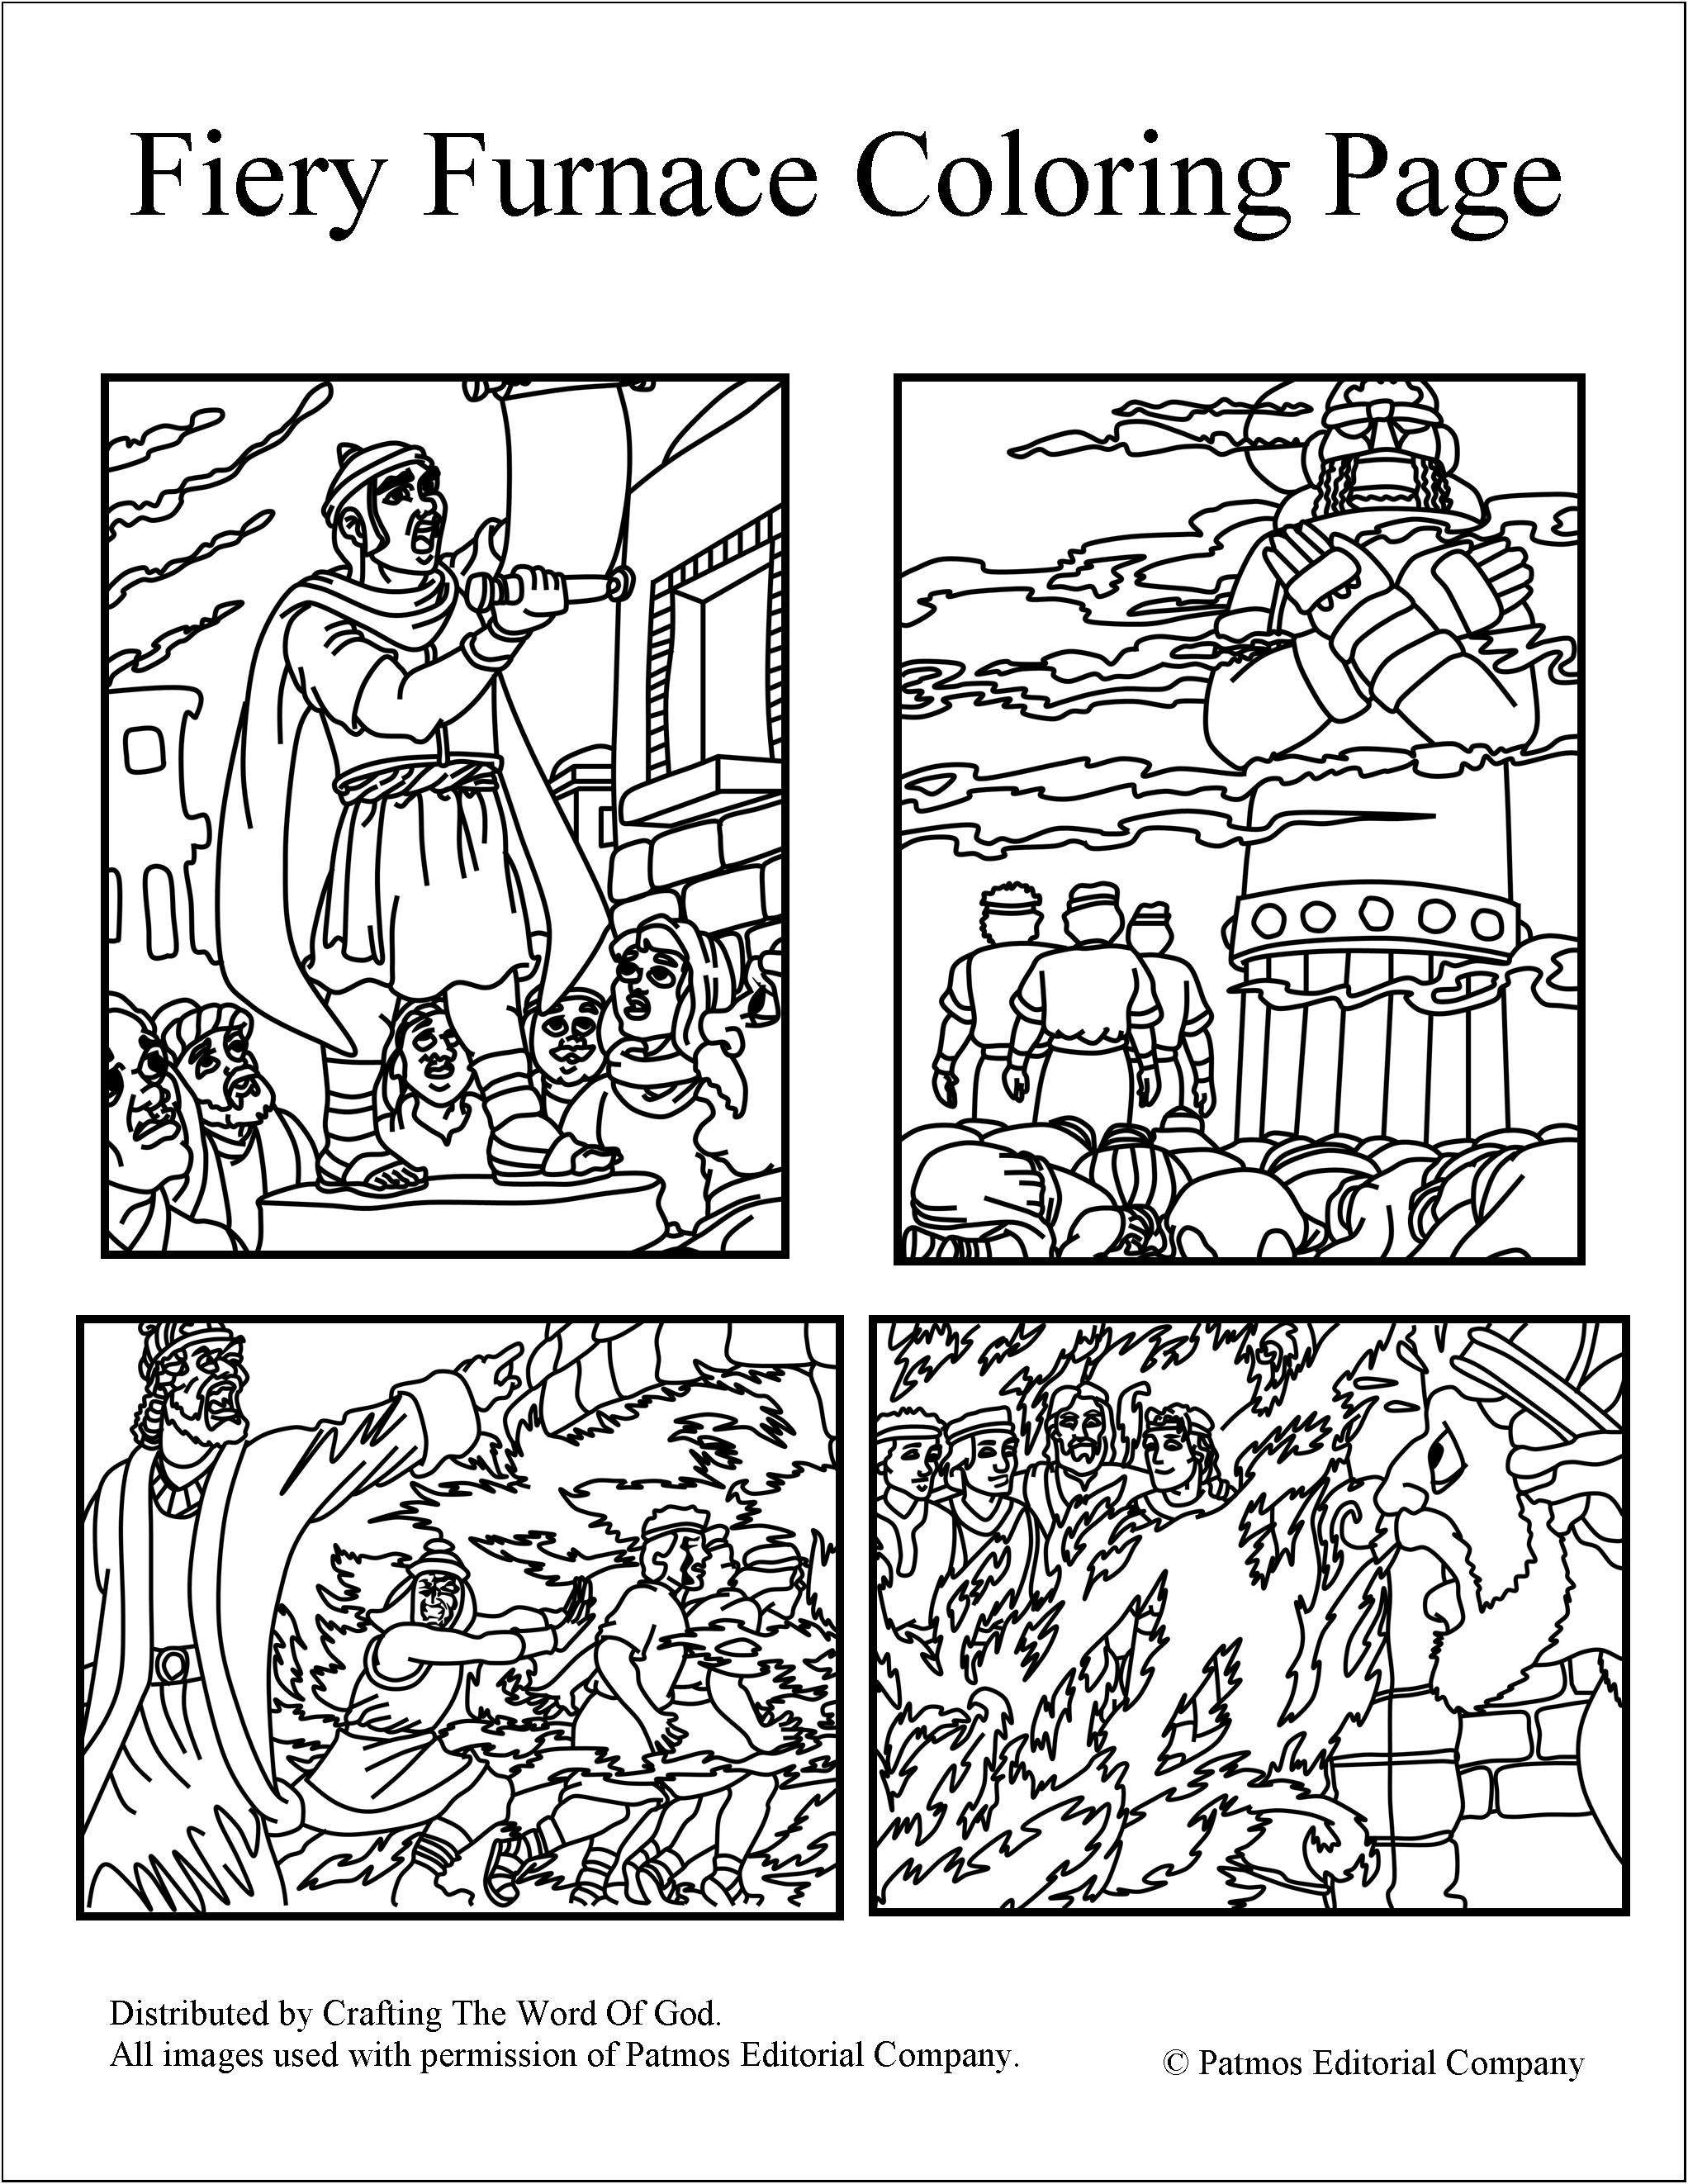 Fiery Furnace Coloring Pages Day 3